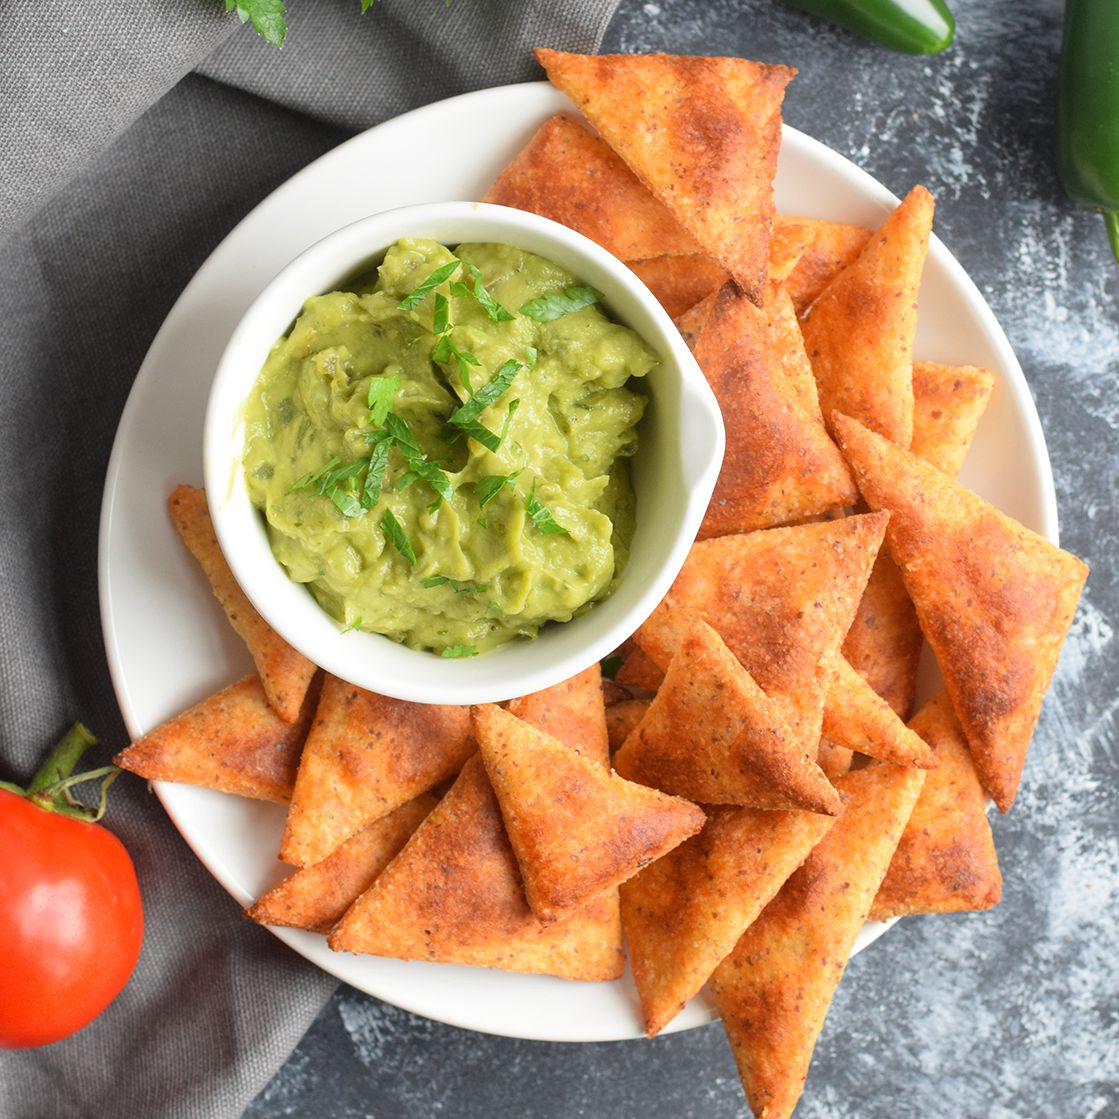 can i eat tortilla chips on keto diet